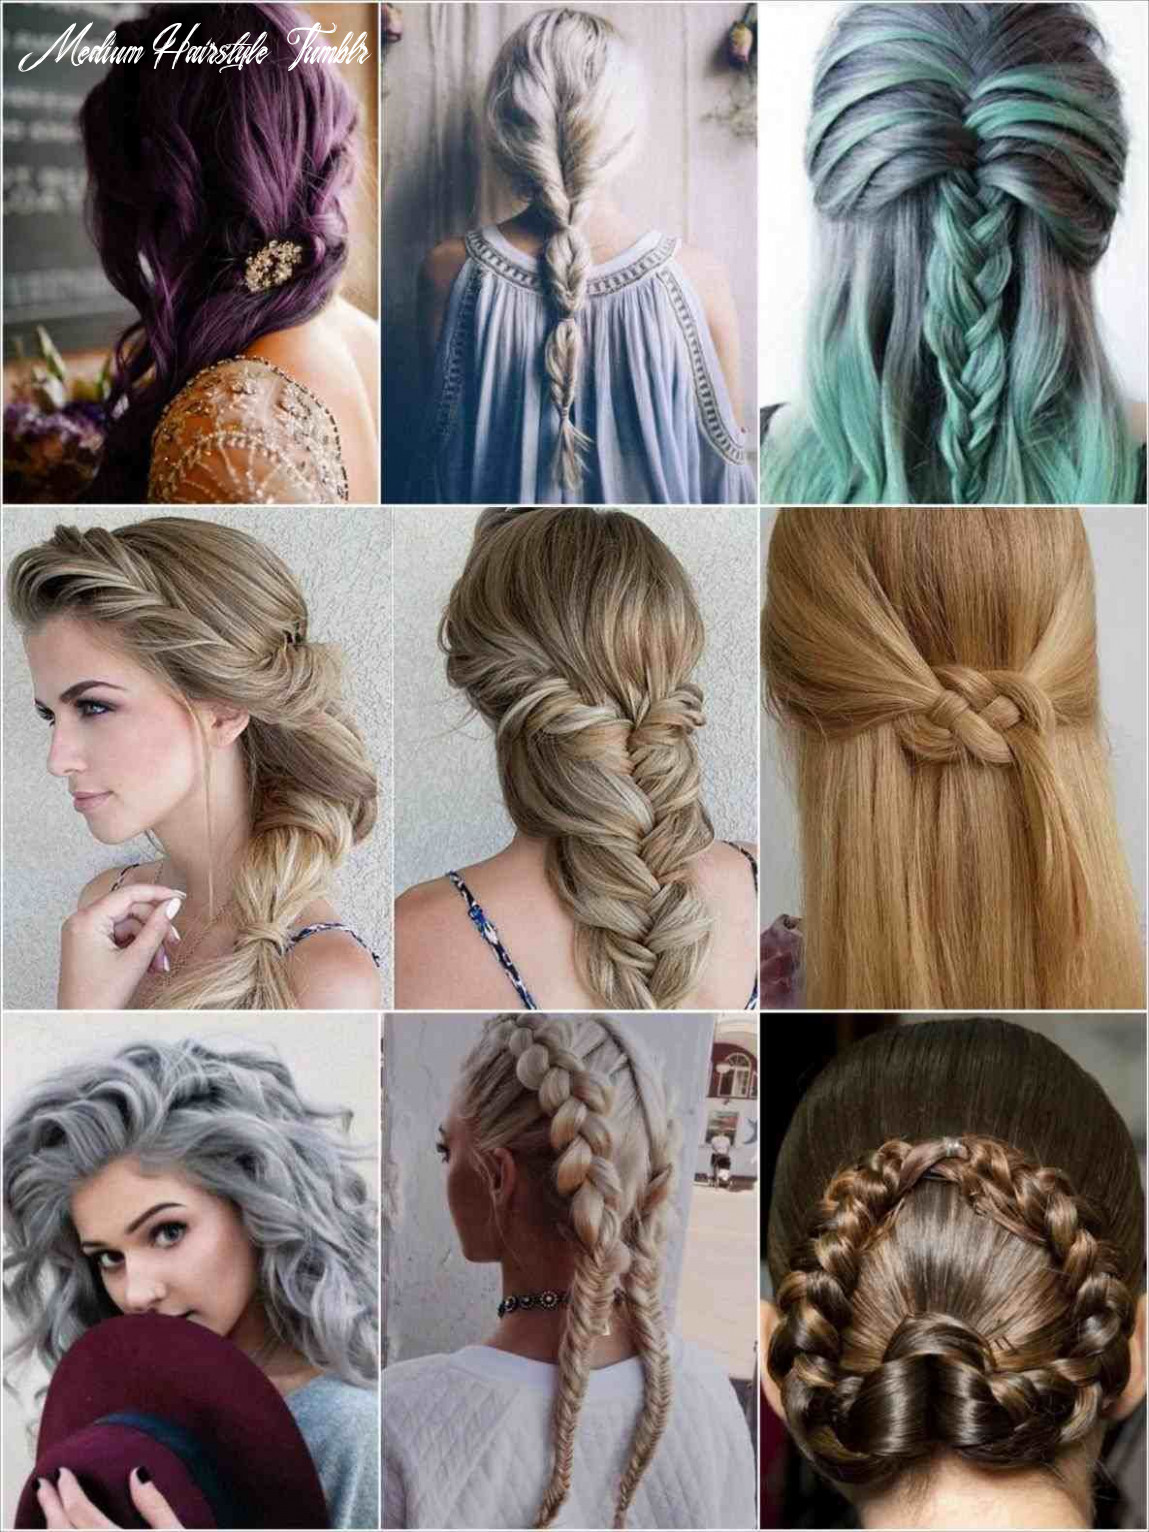 Medium hair hairstyles tumblr | medium hair styles, hair styles